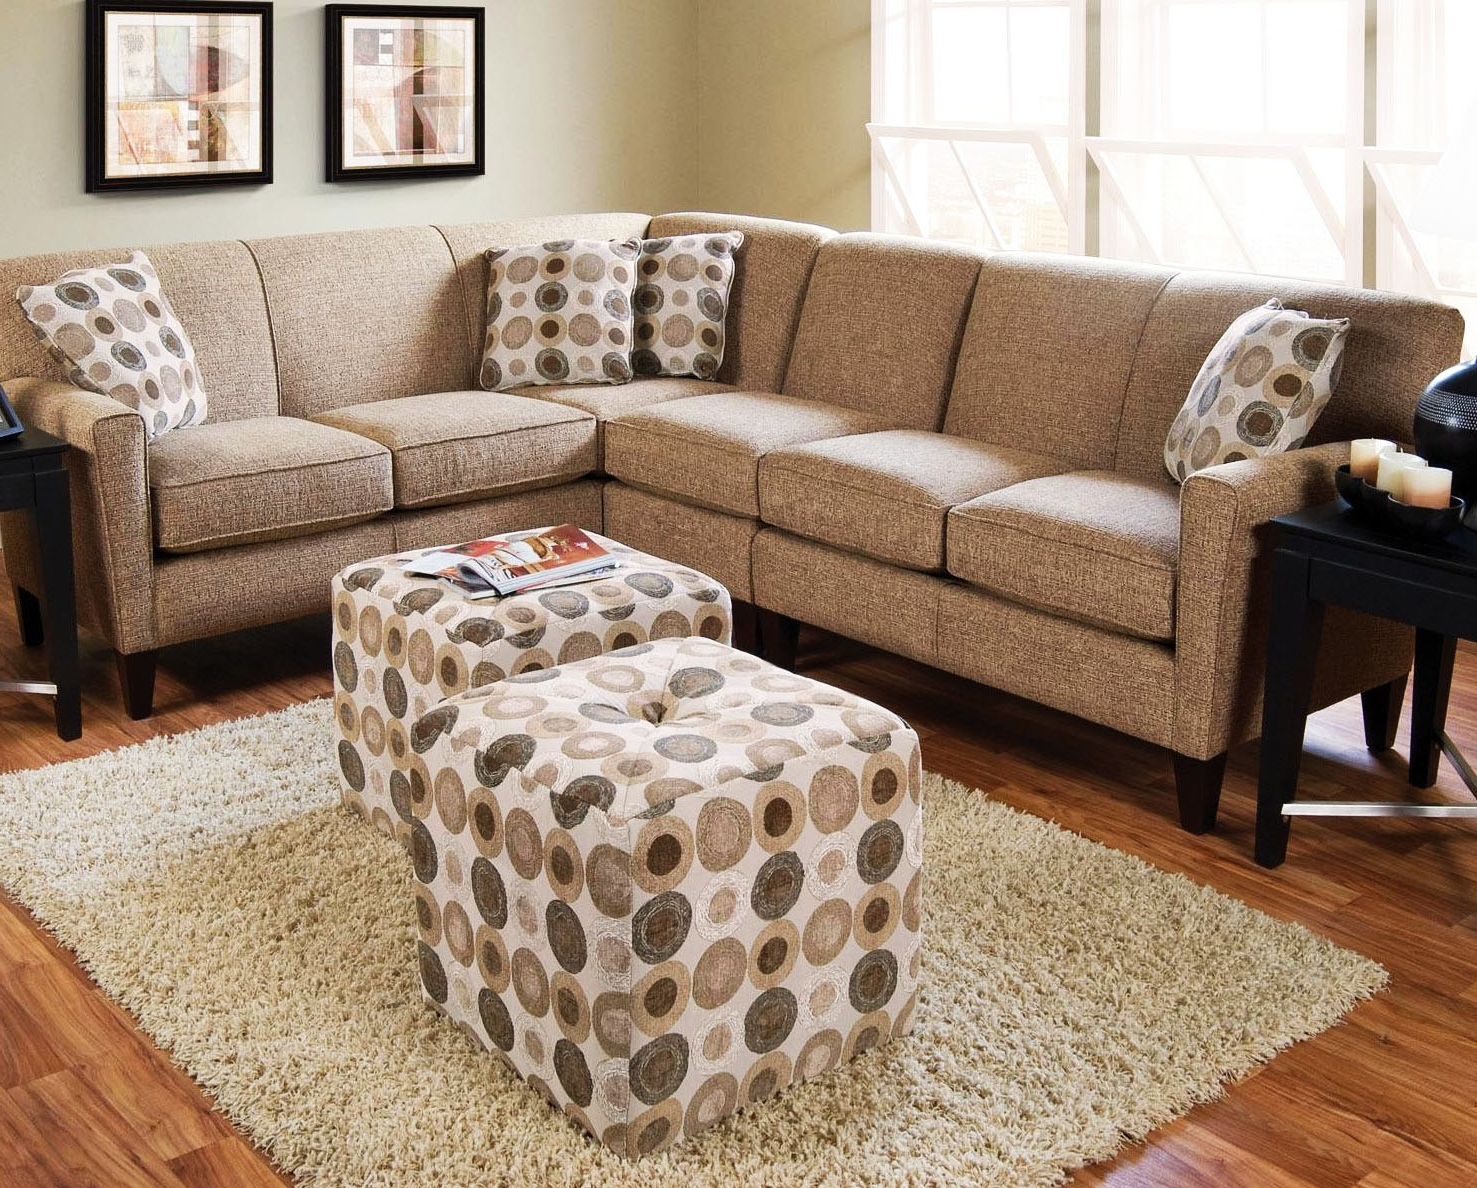 Sectional Sleeper Sofa With Recliners Fabric Sectional Sleeper Regarding Most Recently Released Small Sectional Sofas For Small Spaces (View 6 of 20)